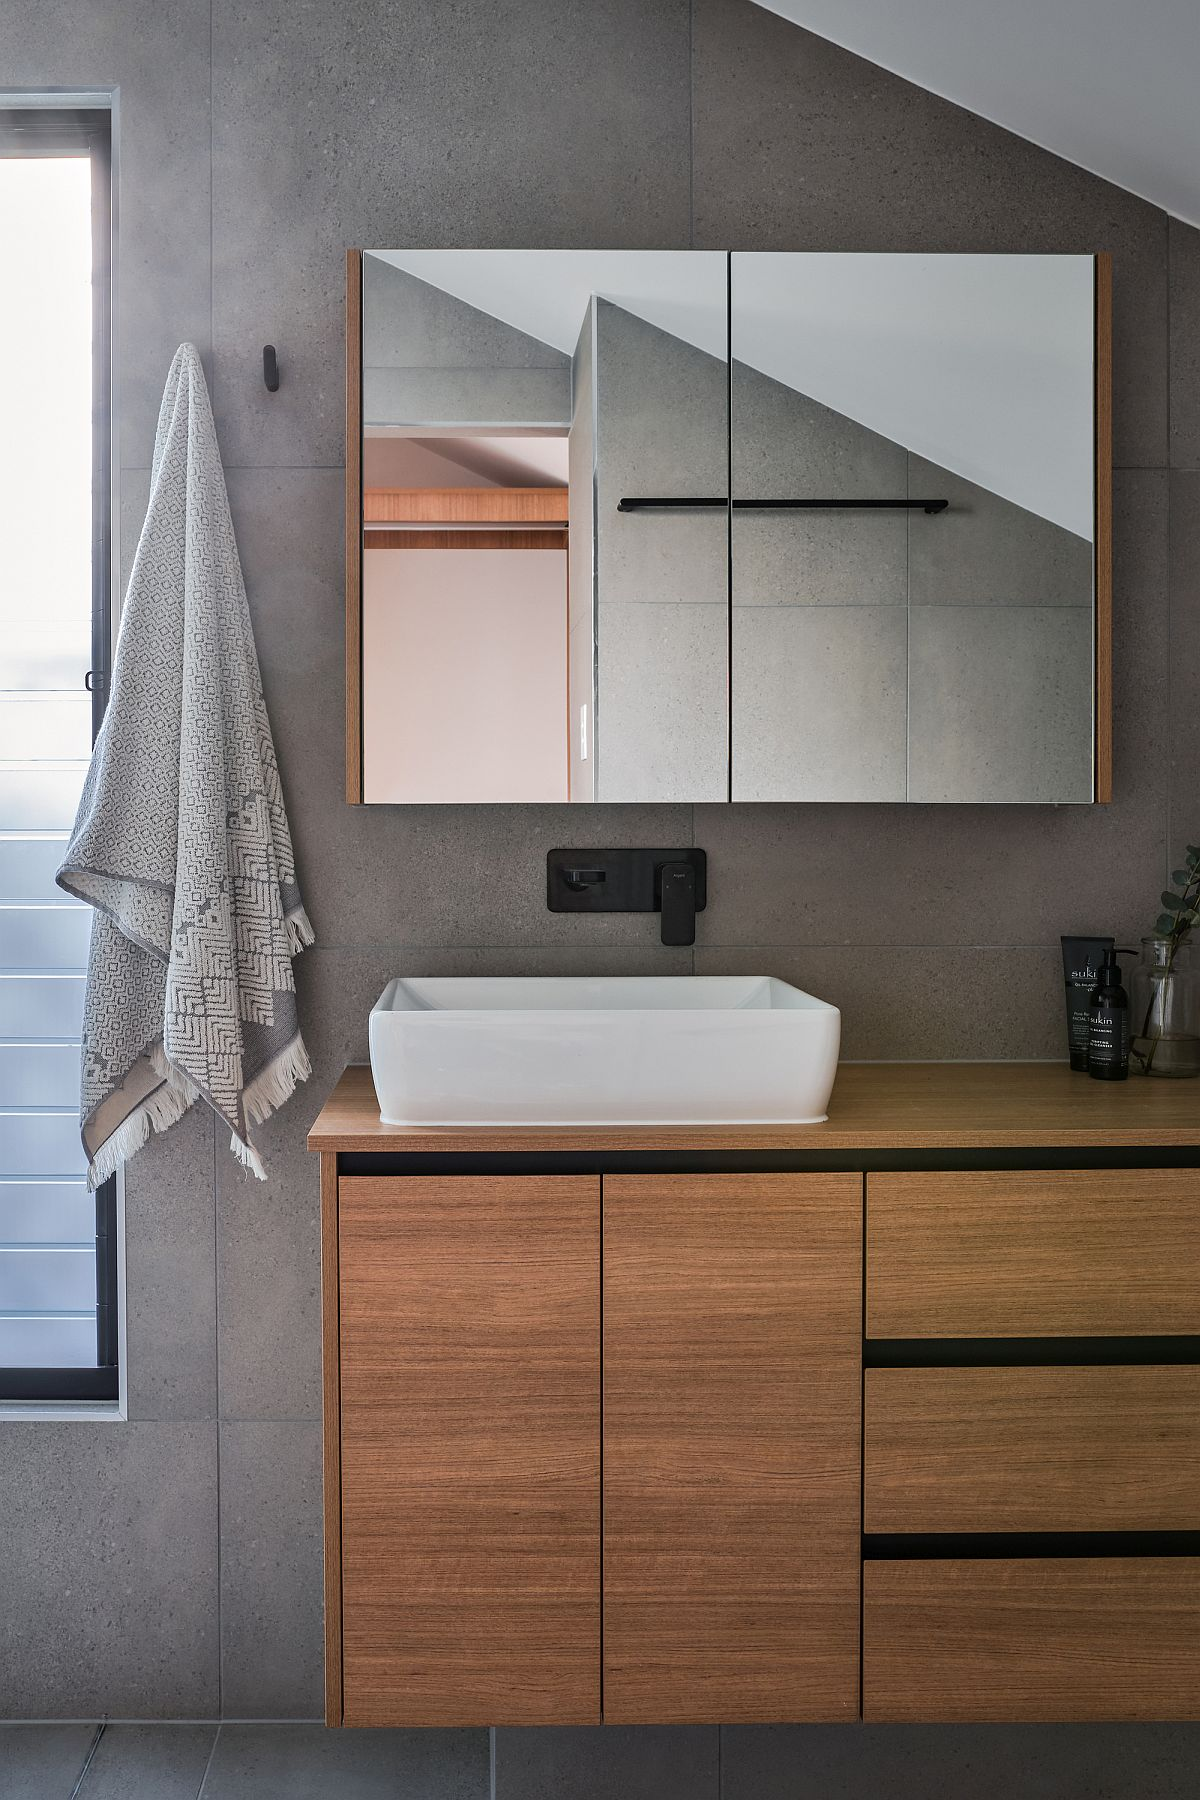 Gray and wood bathroom with an idustrial-minimal style and floating vanity